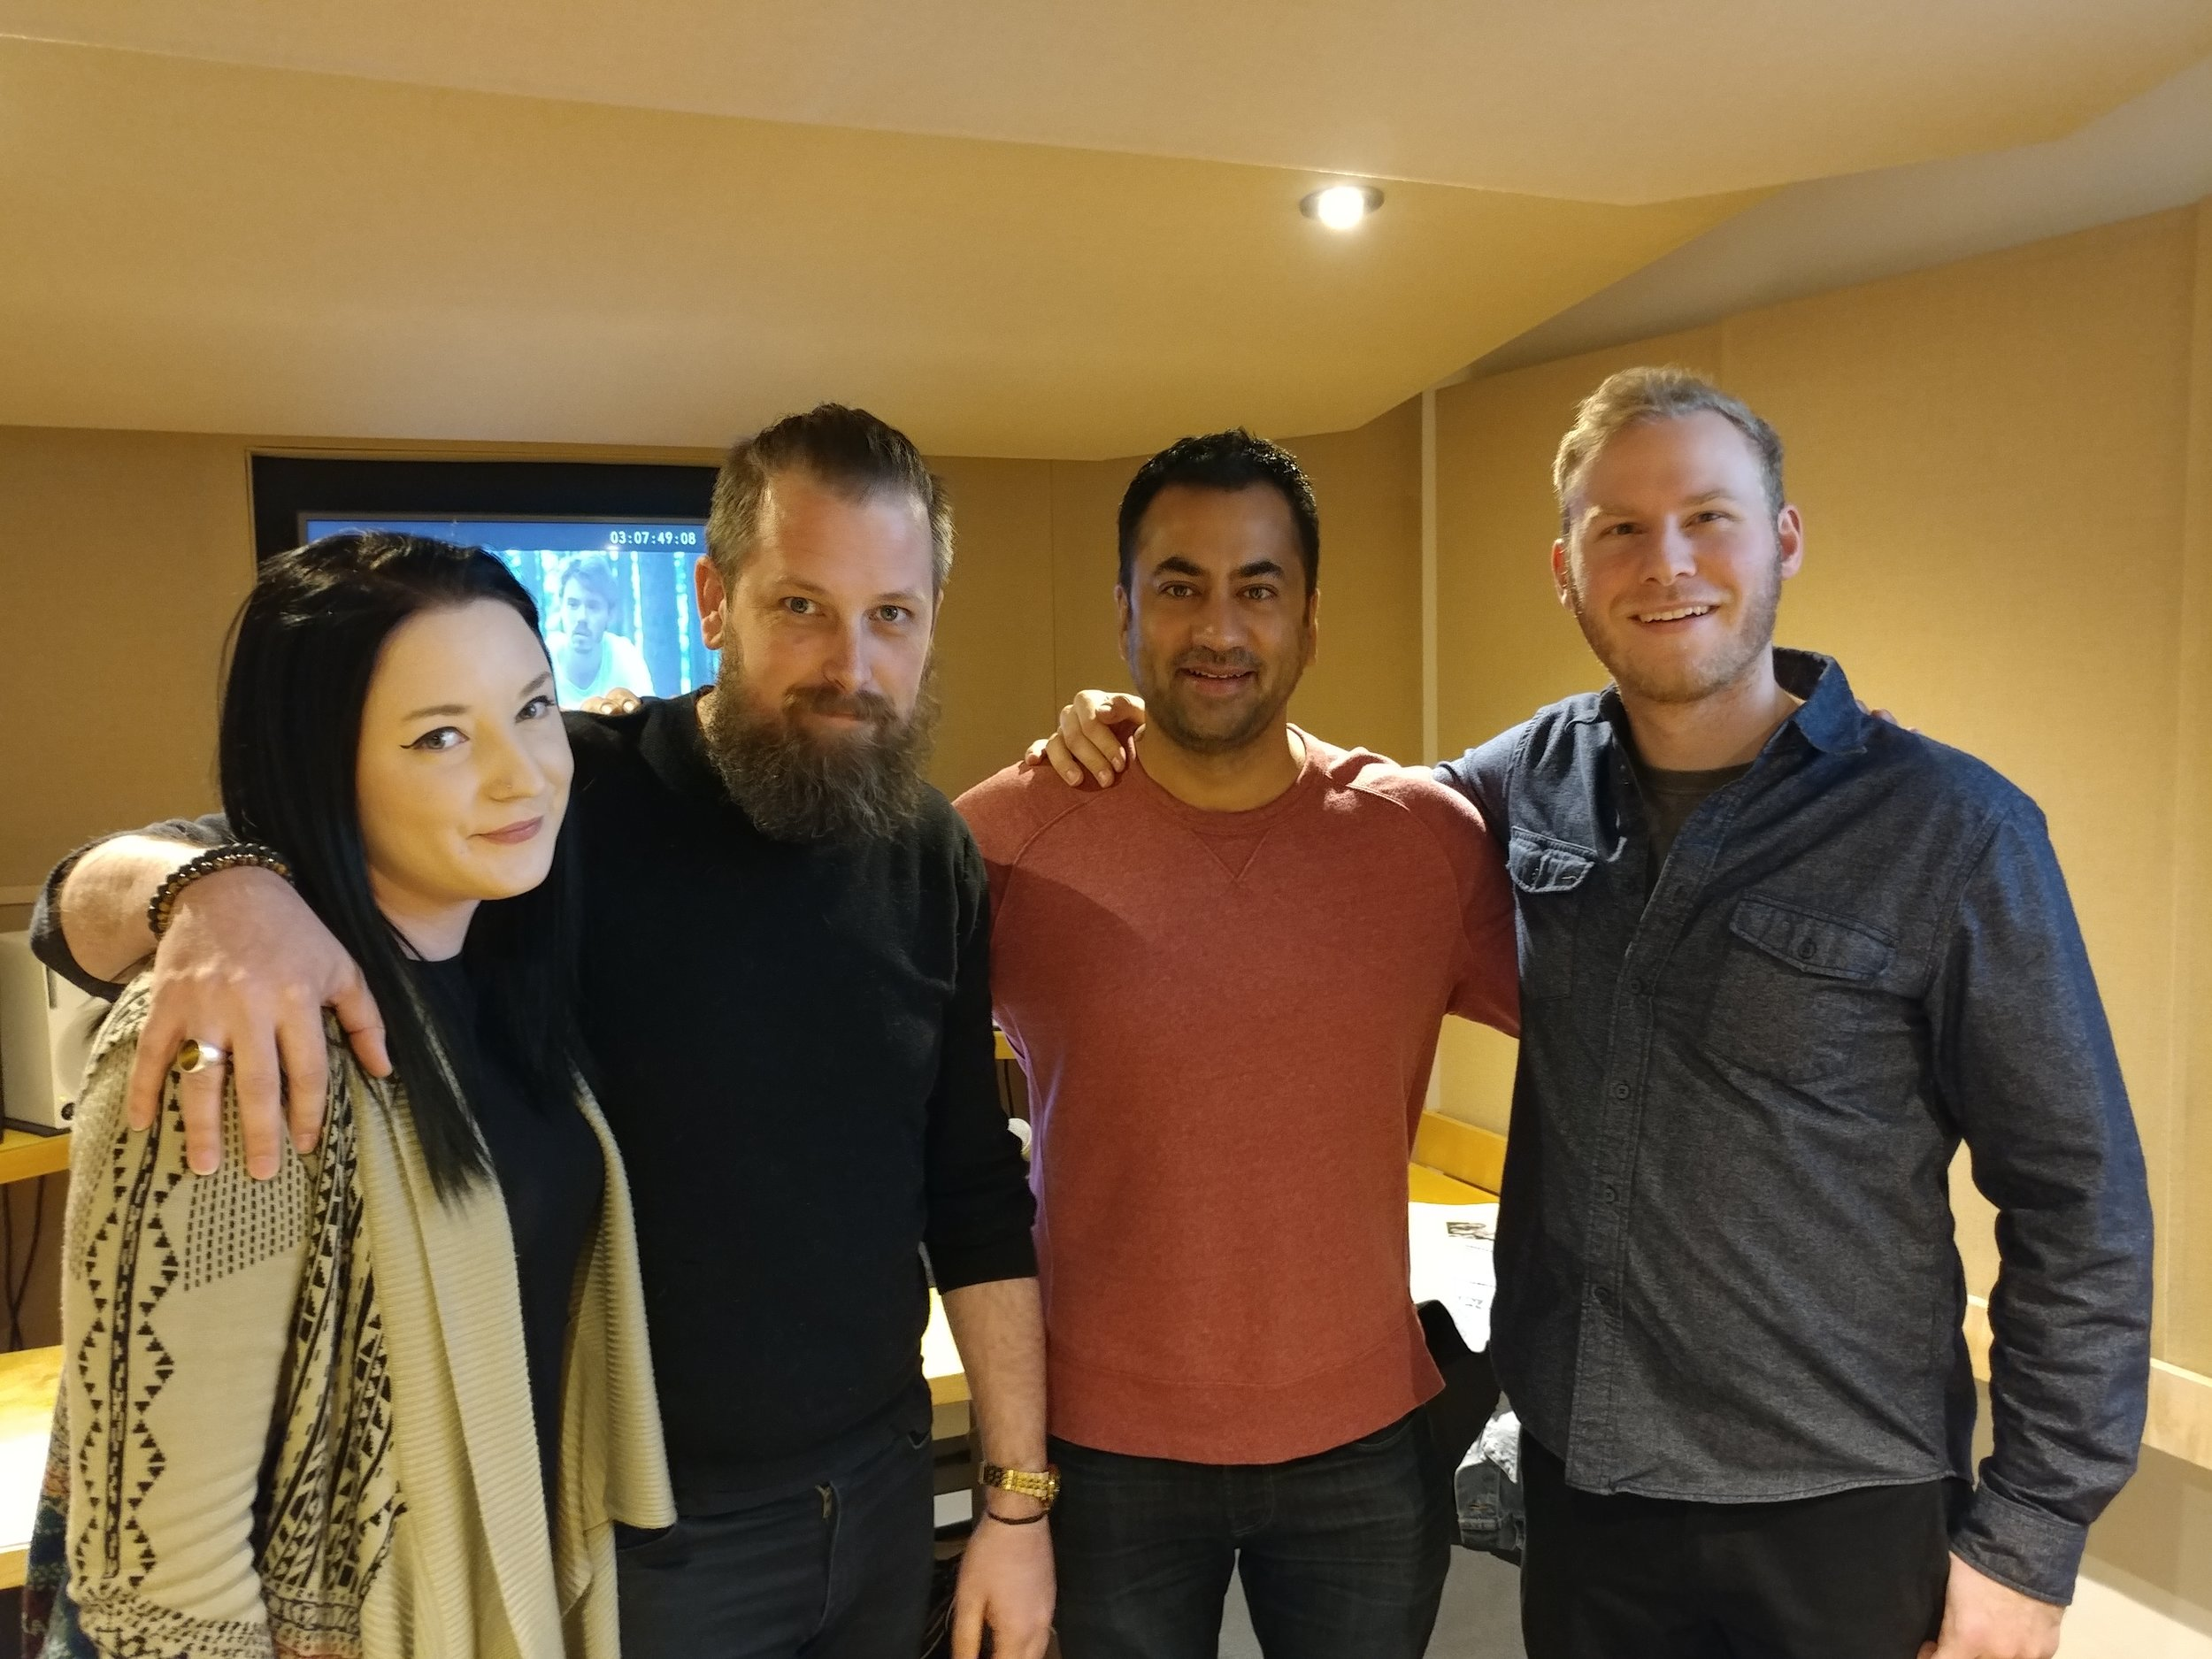 Kal Penn with engineers Adrian Thorstensen and Russell Castiglione, and studio manager Nicole Muzii